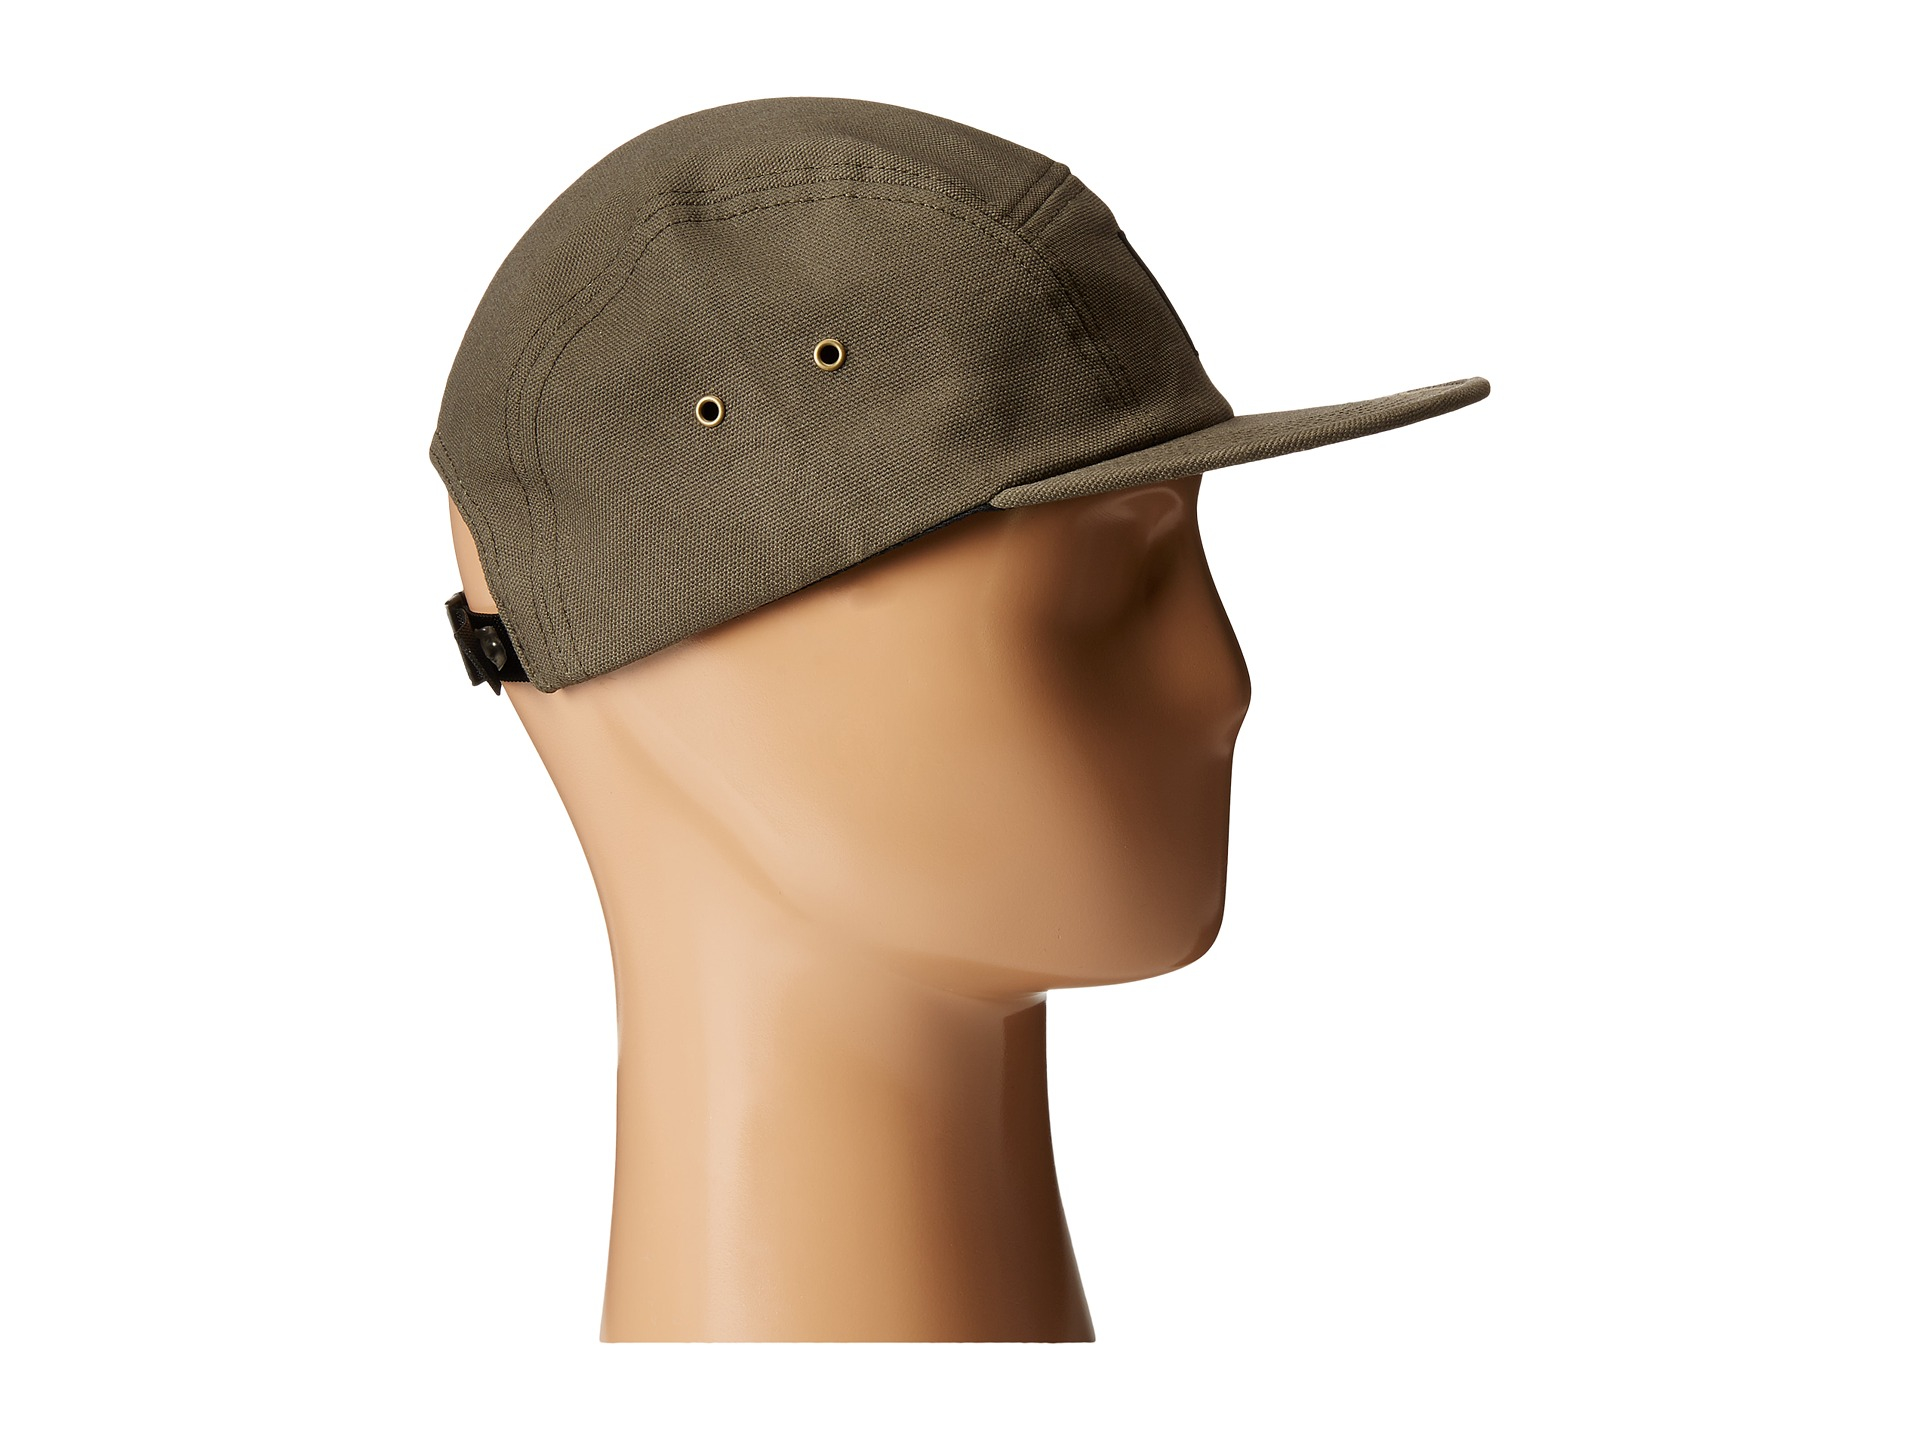 Lyst huf duck canvas volley in green for men jpg 1920x1440 Huf duck volley  green 4d853edefb60